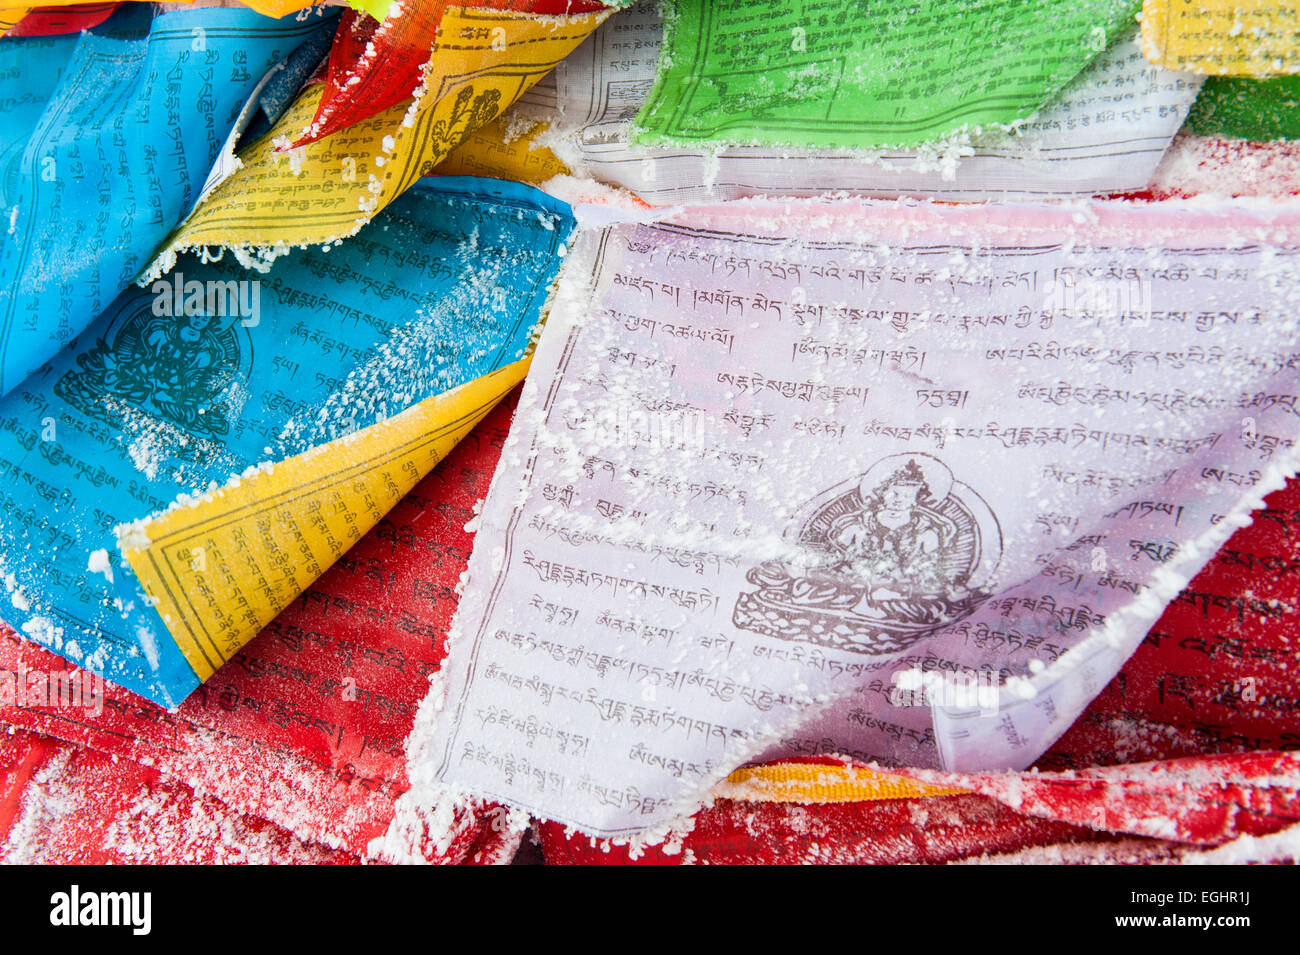 Prayer flags in encrusted in snow, Sichuan, China - Stock Image